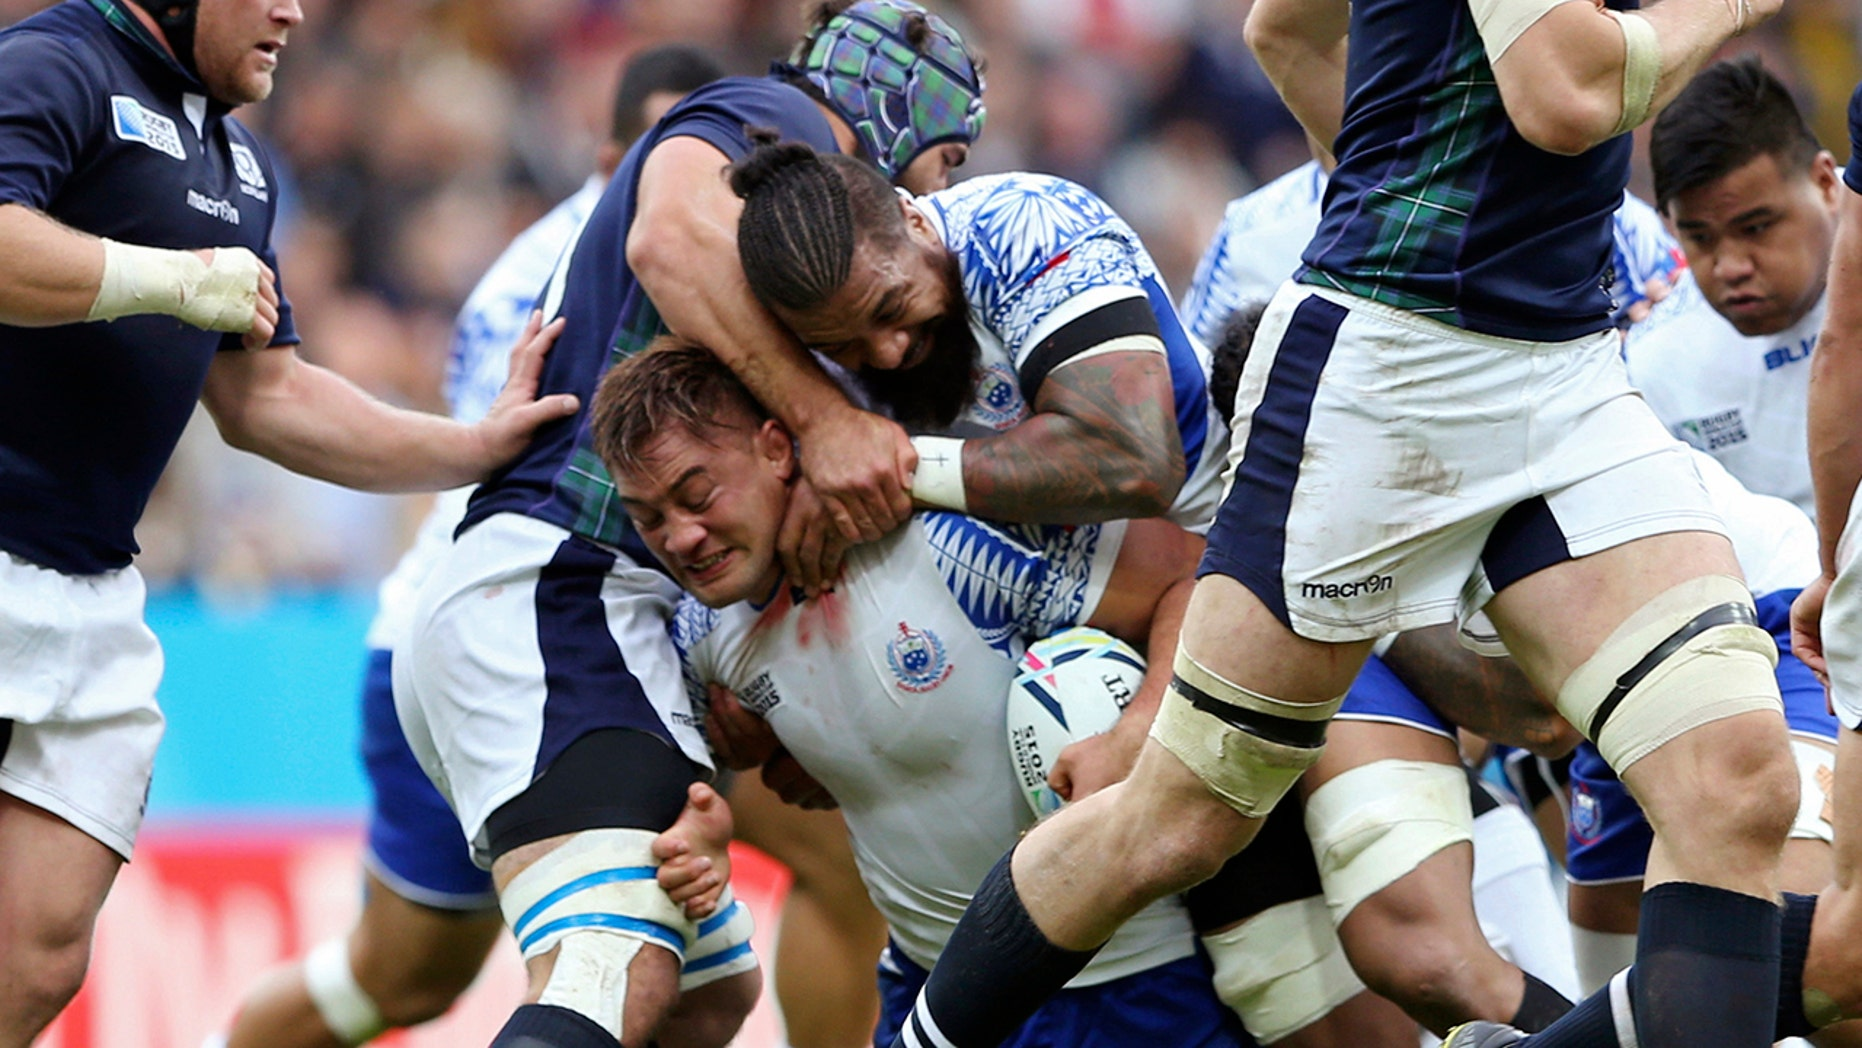 FILE - In this Oct. 10, 2015, file photo, Samoa's Jack Lam is tackled during their Rugby World Cup Pool B match between Samoa and Scotland at St James' Park, Newcastle, England. Samoan rugby players will wear skin suits to cover their traditional Pacific Islander tattoos during some training sessions at the World Cup in order not to offend their Japanese hosts. (AP Photo/Scott Heppell, File)